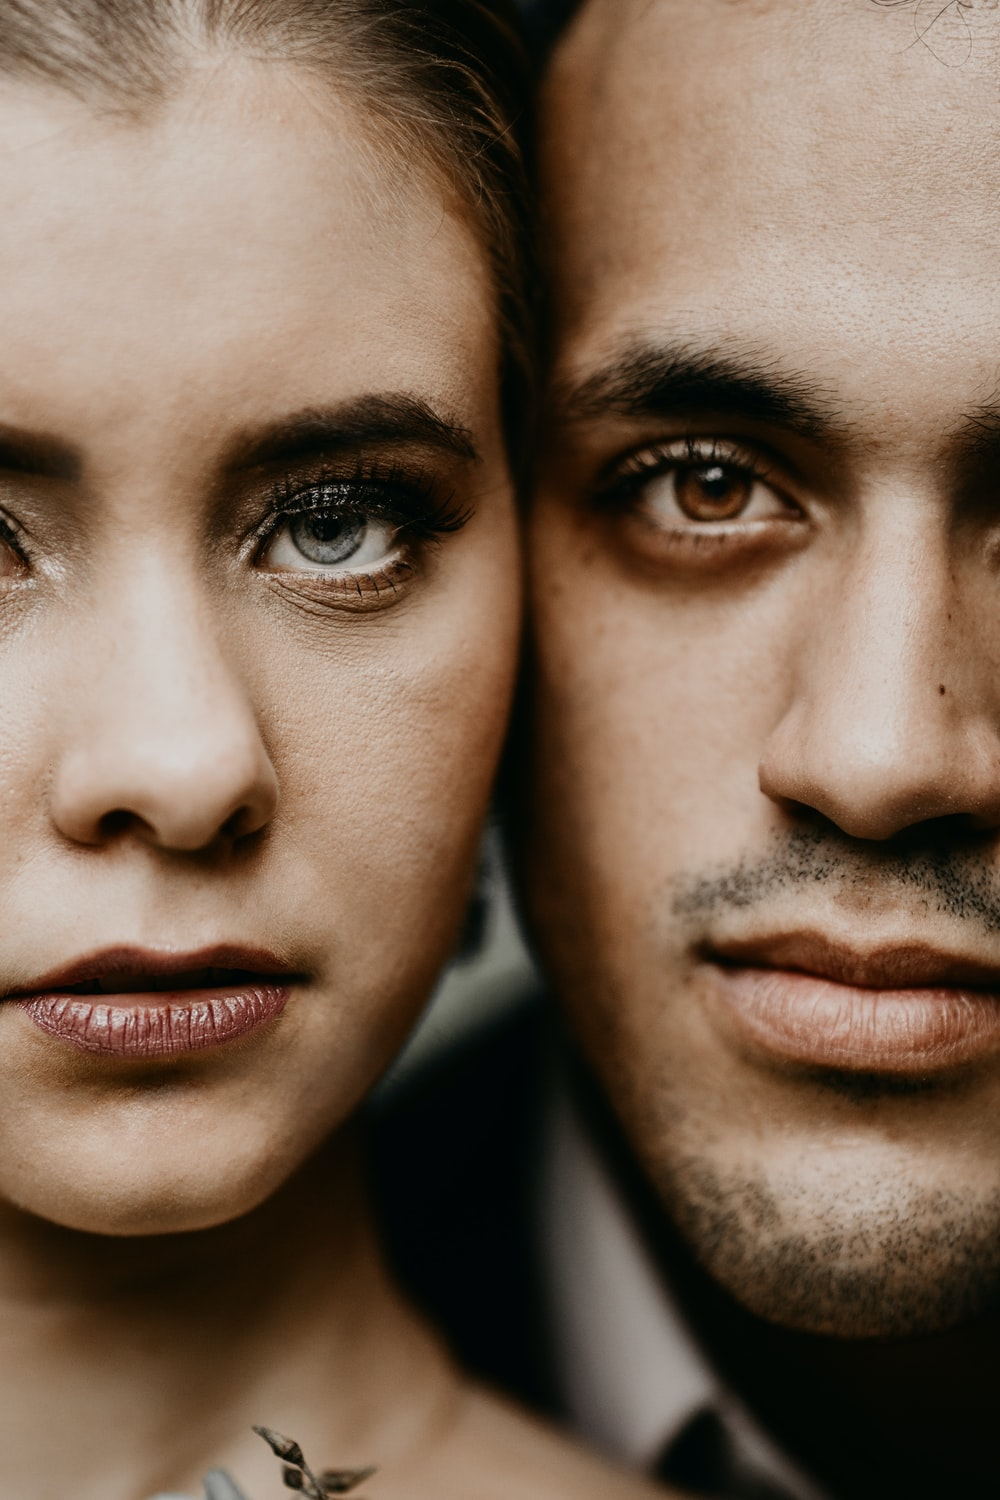 man and woman face close-up photography